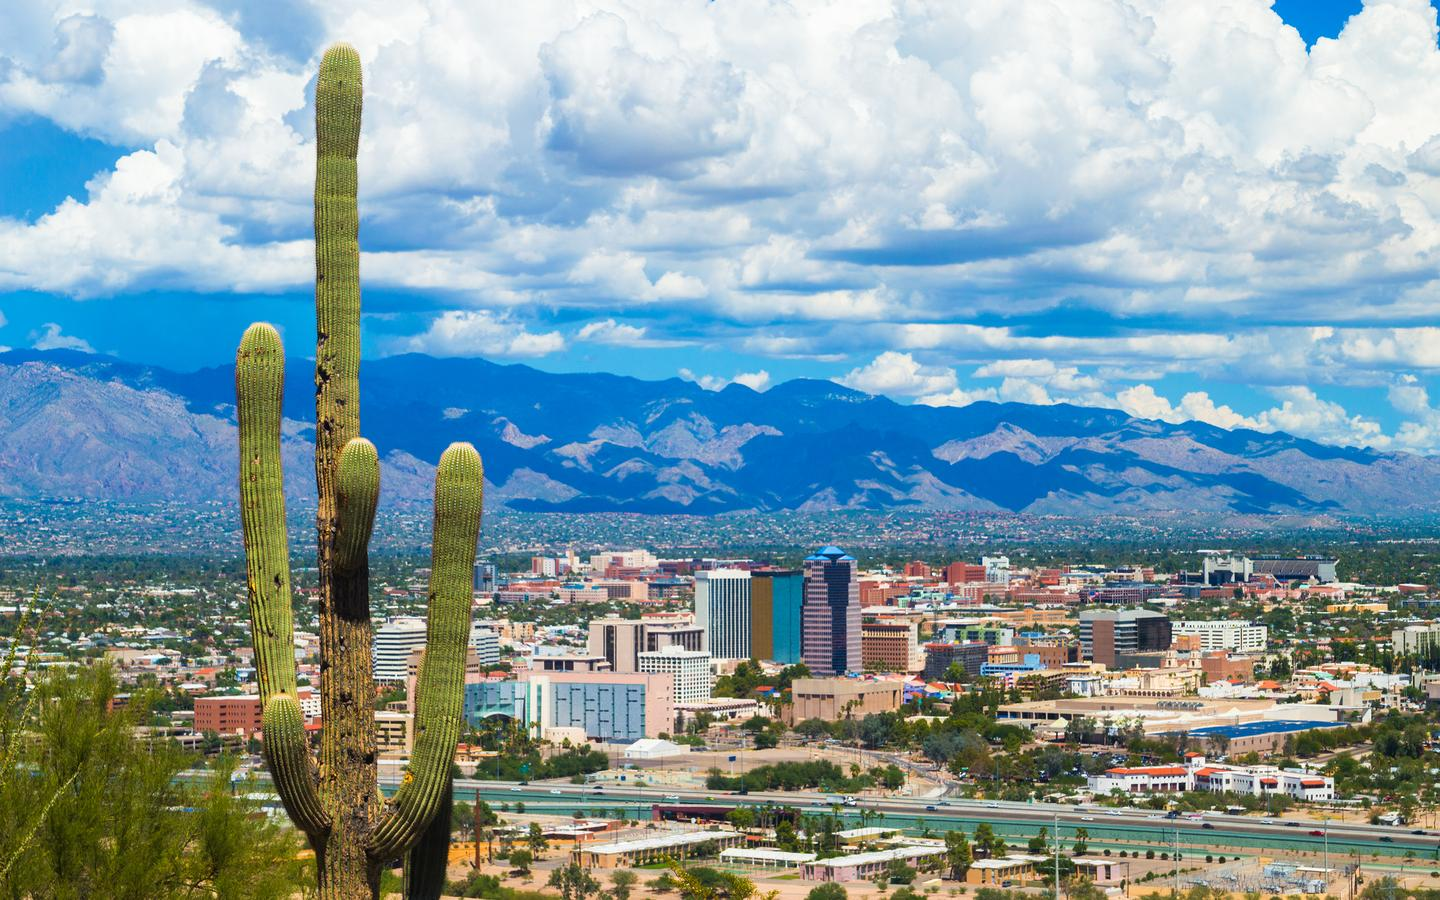 Hotels in Tucson